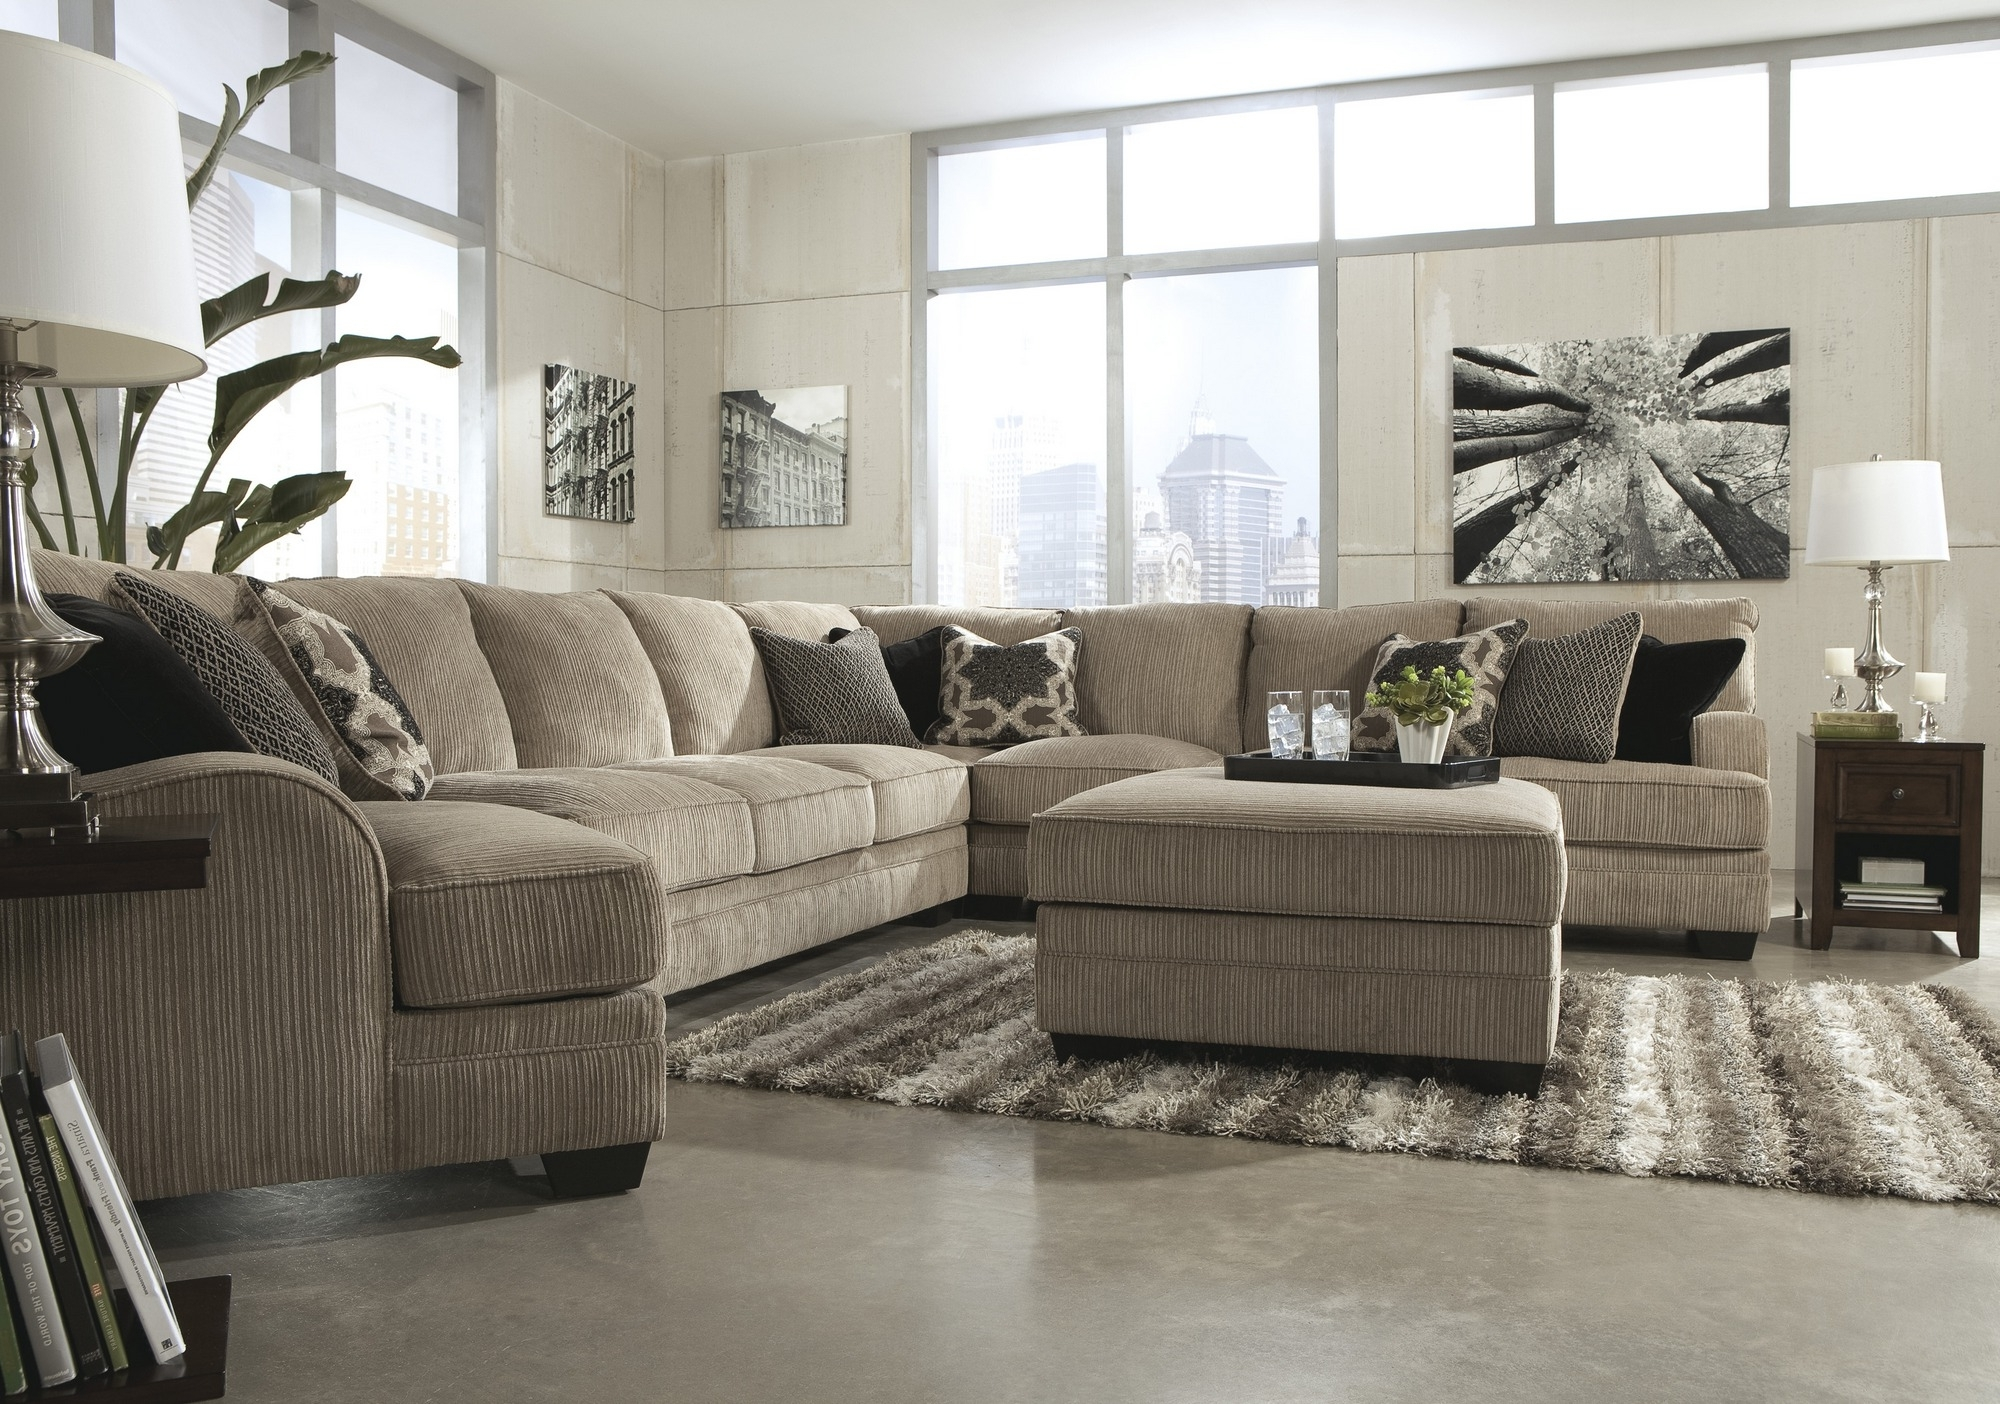 Sofas With Oversized Pillows Throughout Most Current Pale Grey Microfiber Sectional Couch Plus Accent Pillows And (View 18 of 20)